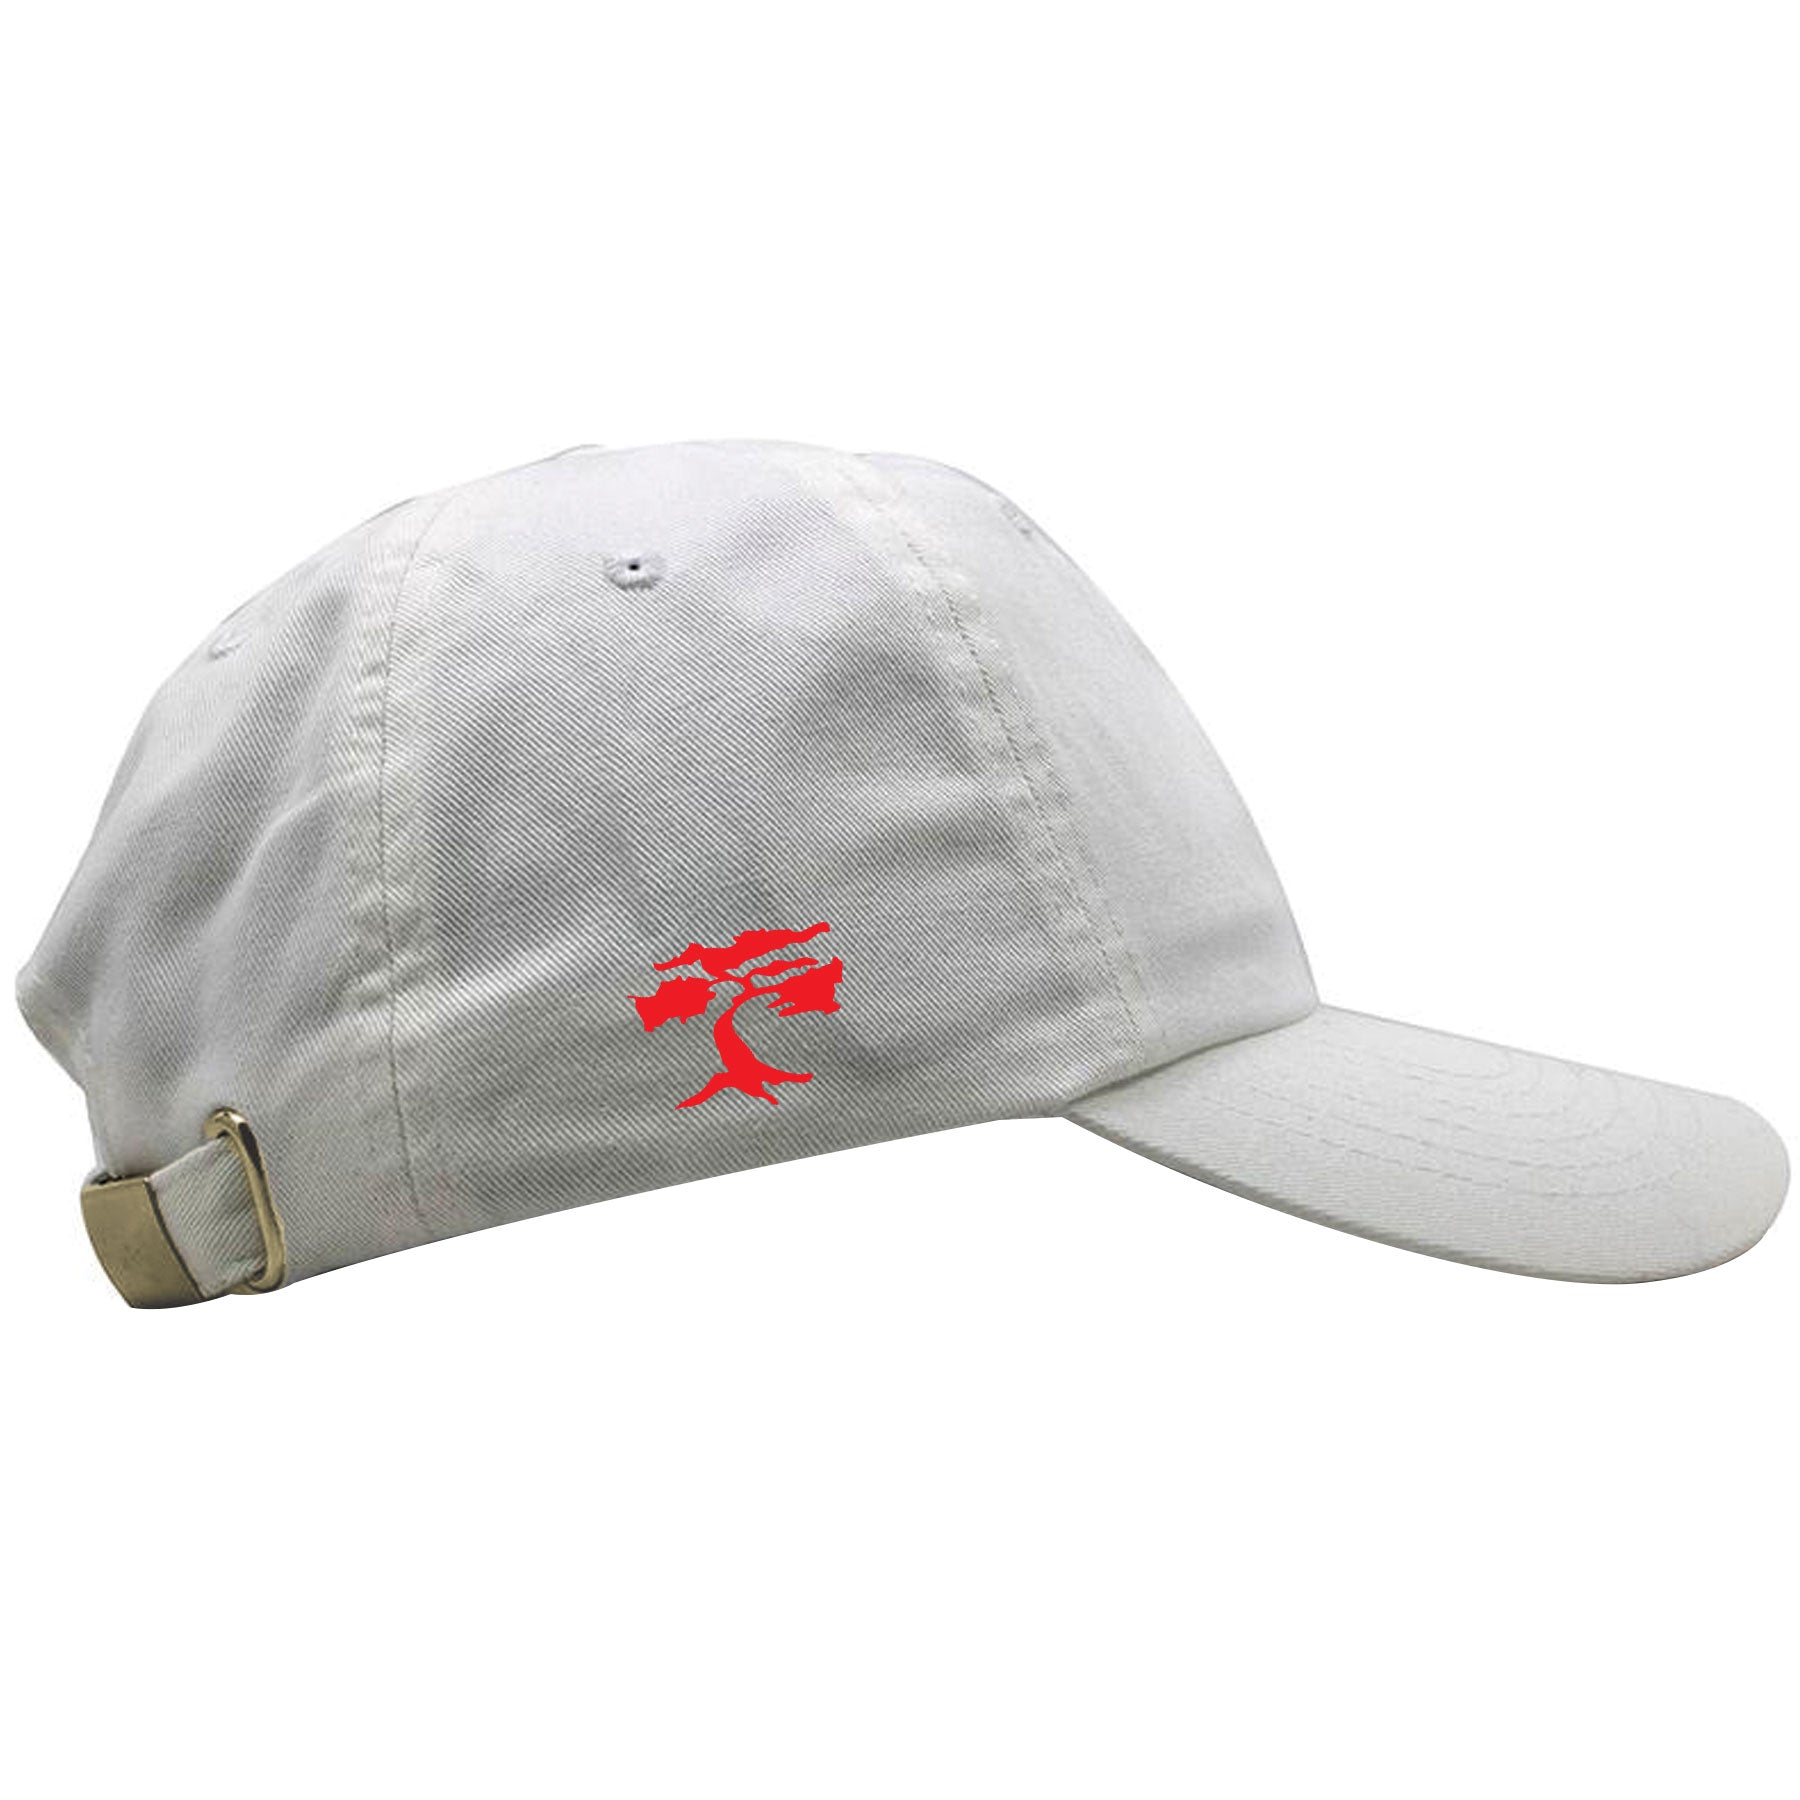 Embroidered on the front of the white Backwoods Russian Cream adjustable  dad hat is the Backwoods  On the right side of the Backwoods Russian Cream  logo is ... 3730a662a868